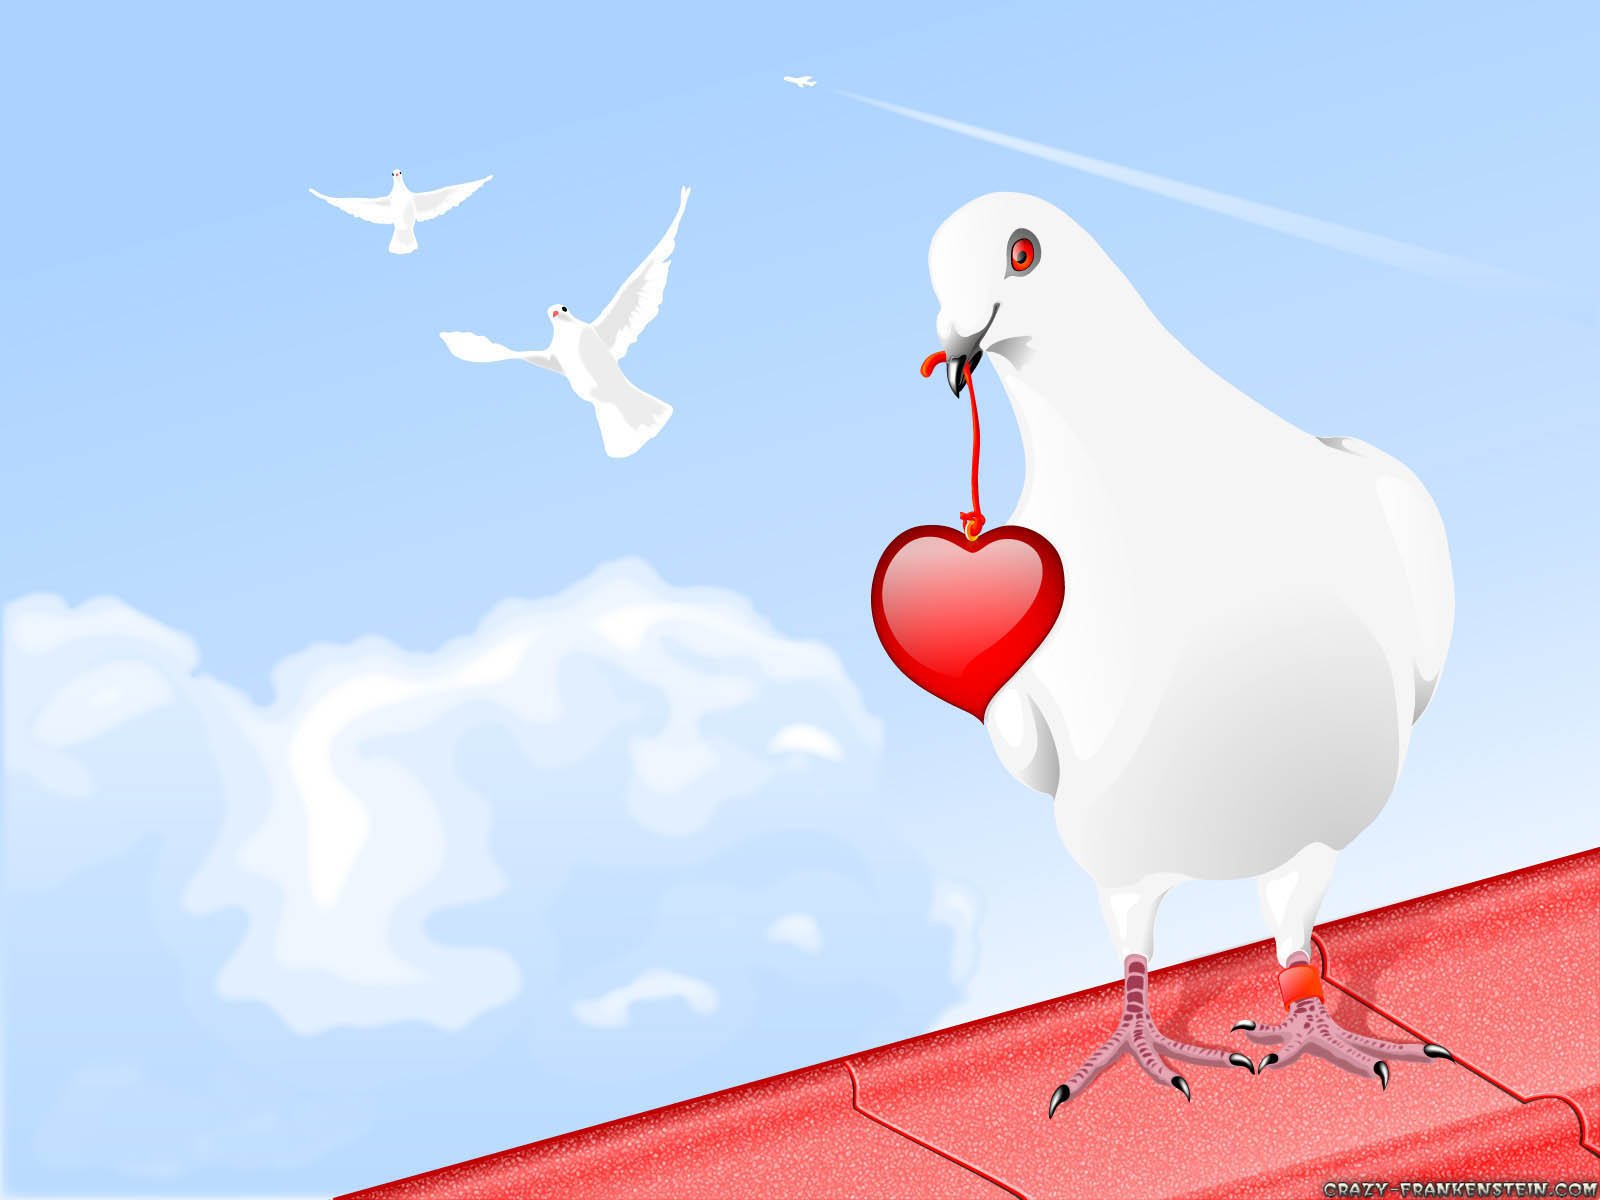 http://1.bp.blogspot.com/-j7mYe1TSoSU/T-29m5KBkOI/AAAAAAAAB1Q/3lqcYYnXbx8/s1600/white-pigeon-red-heart-1600x1200-love-wallpapers.jpg